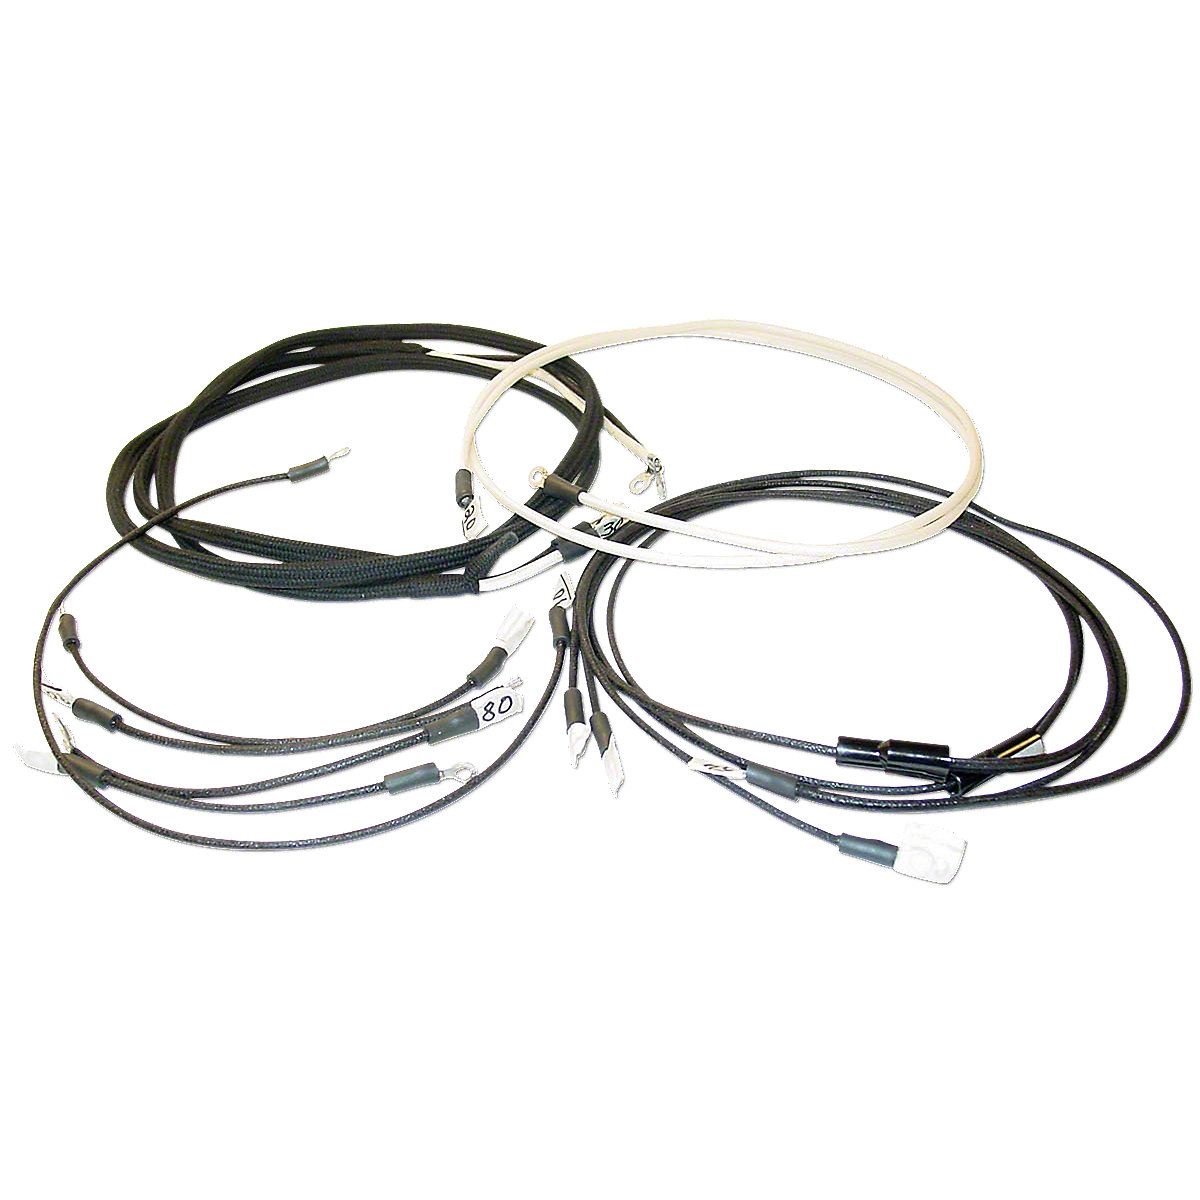 Restoration Quality Wiring Harness Jds3563 Semi Trailer Wire Kit For Tractors Using 3 Or 4 Terminal Voltage Regulator